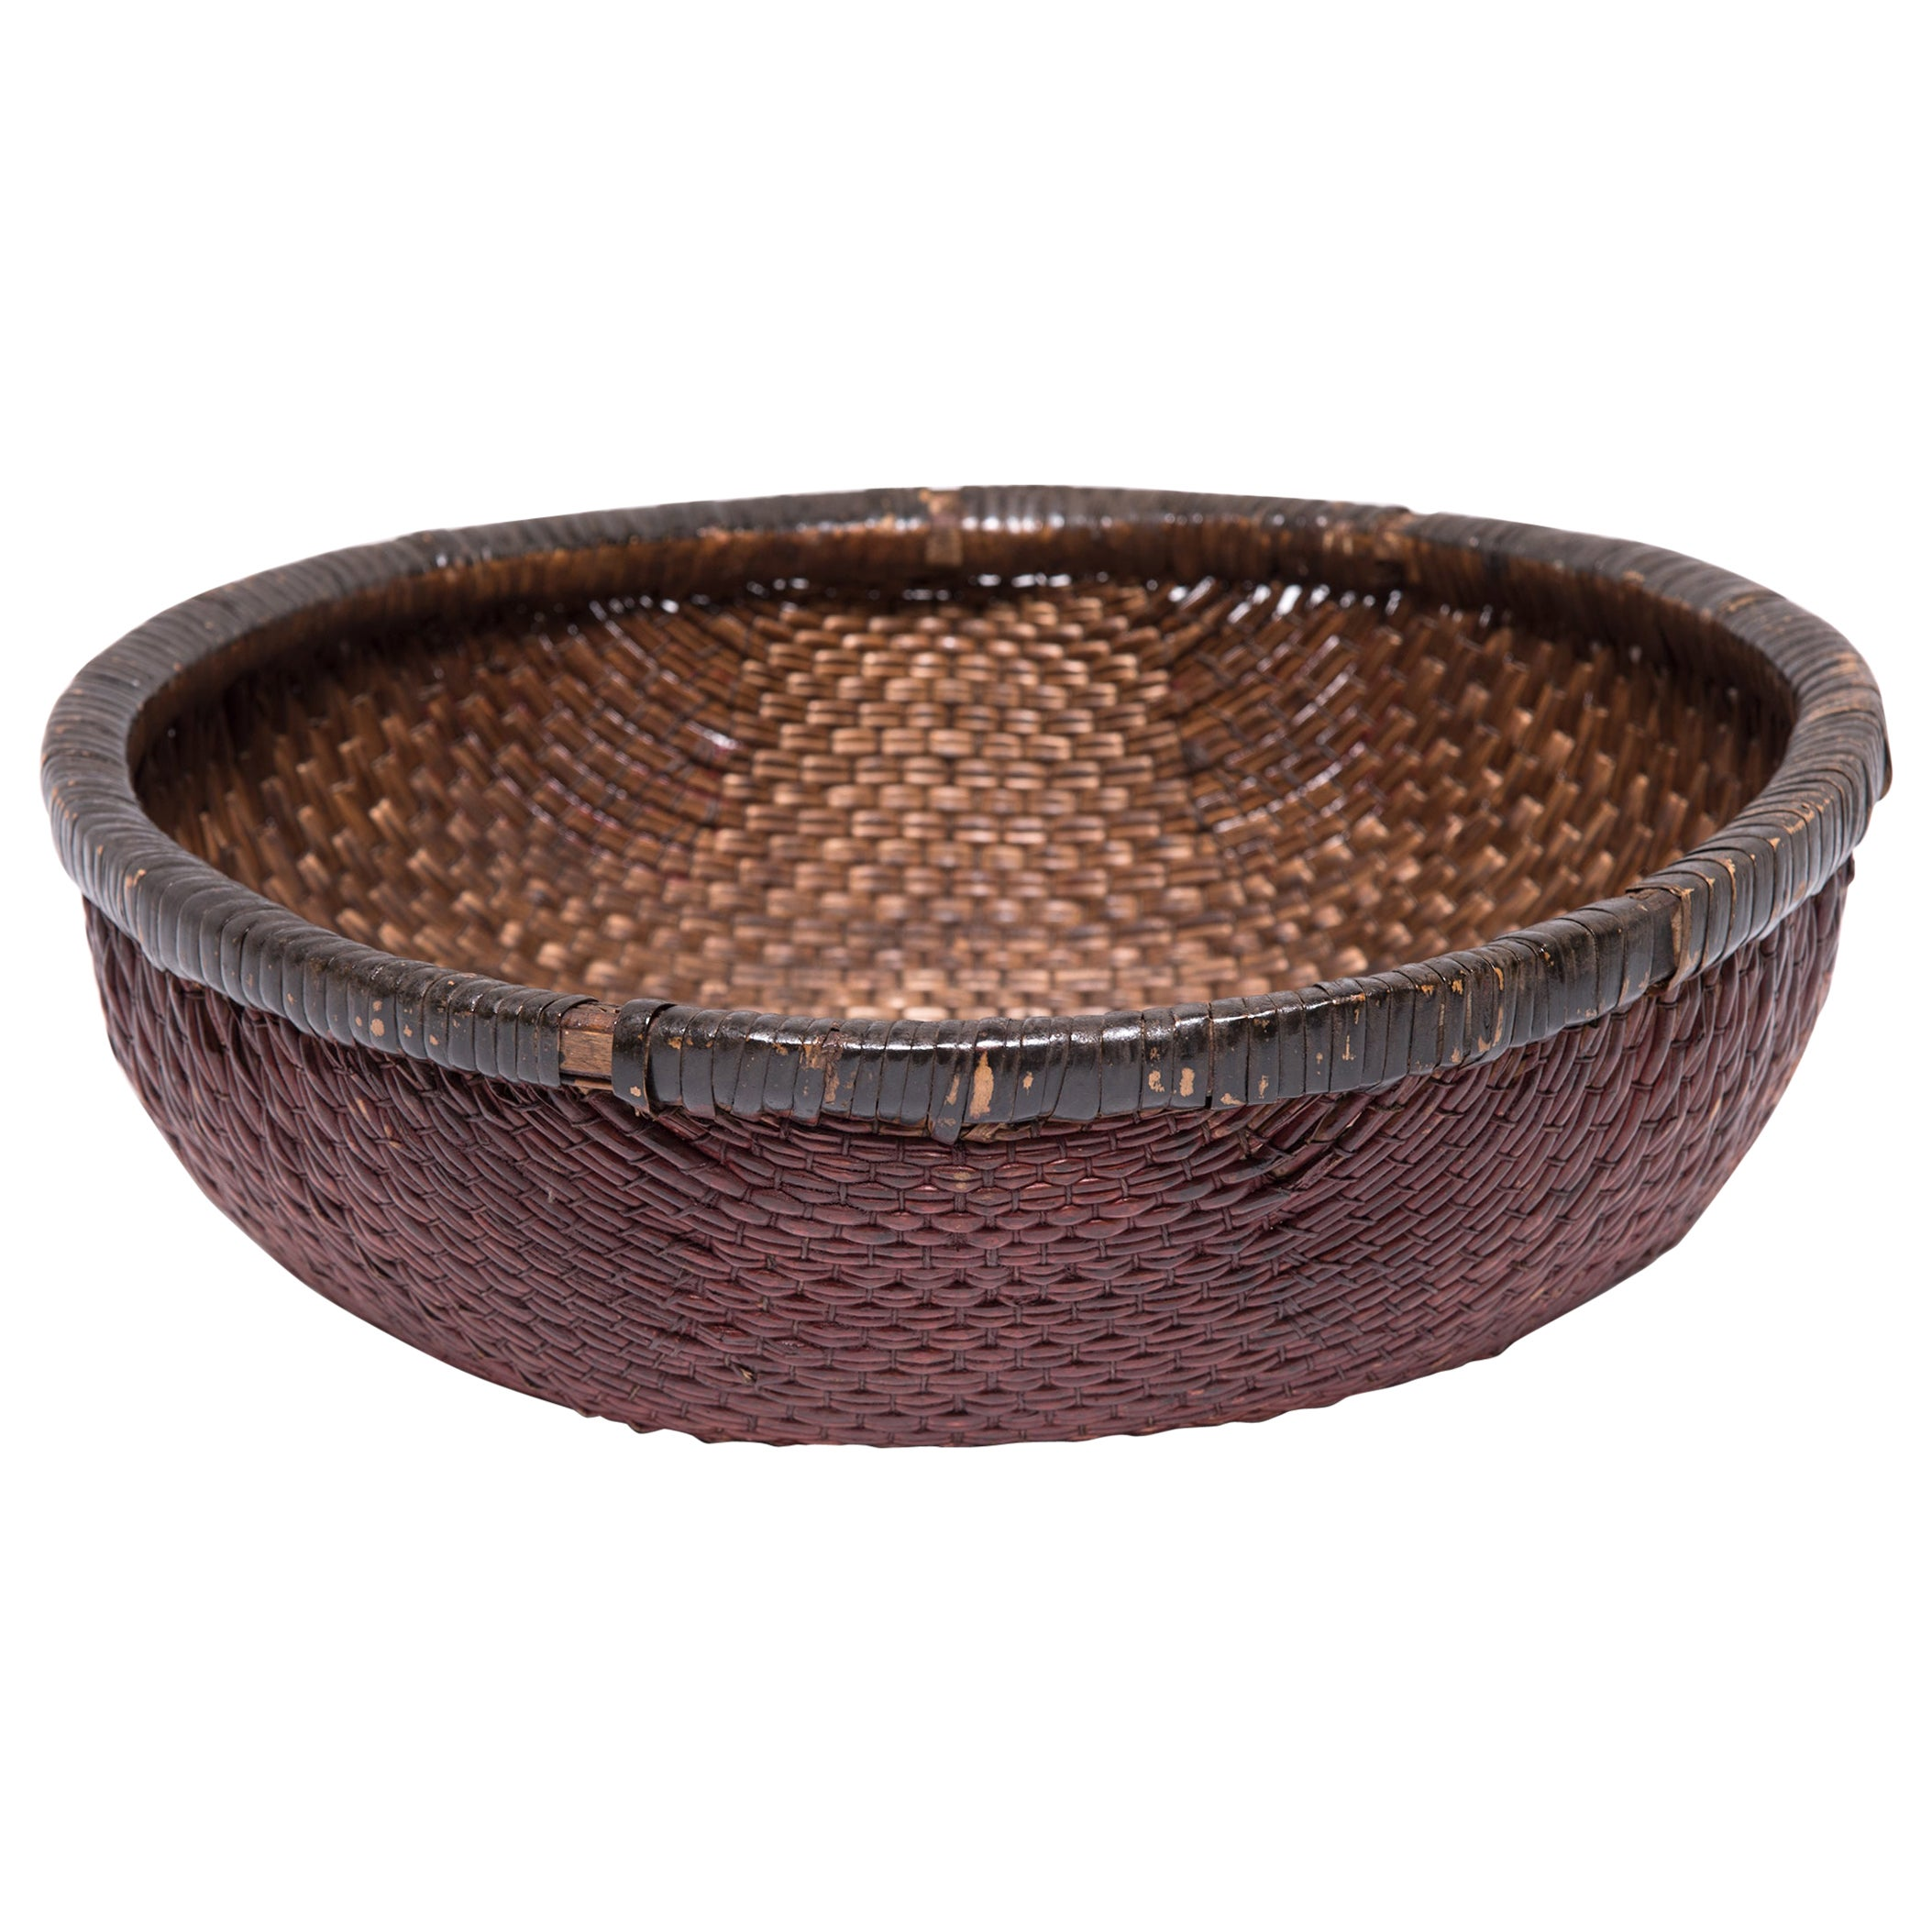 Early 20th Century Chinese Woven Field Basket